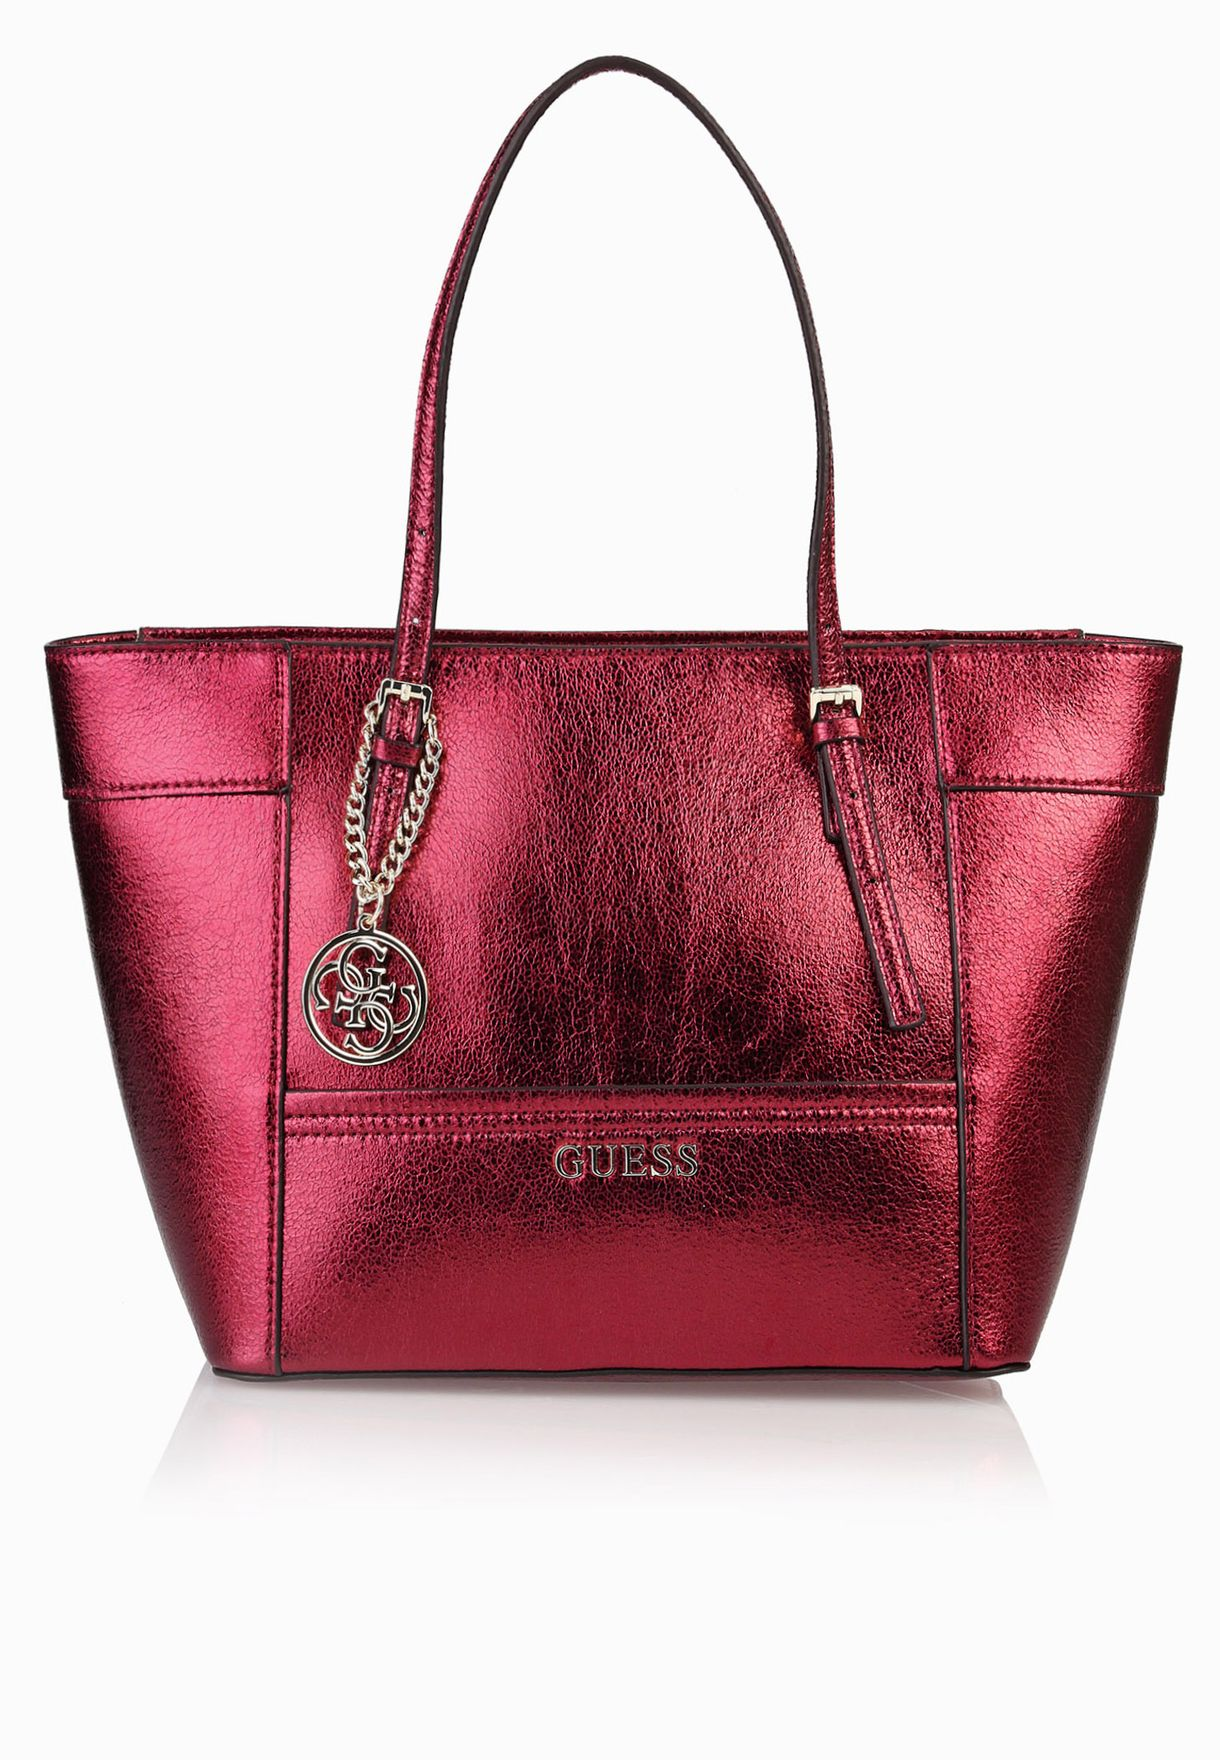 1708cb8be9d7 Shop Guess browns Small Delaney Tote MG453522 for Women in Bahrain -  GU094AC57NYW